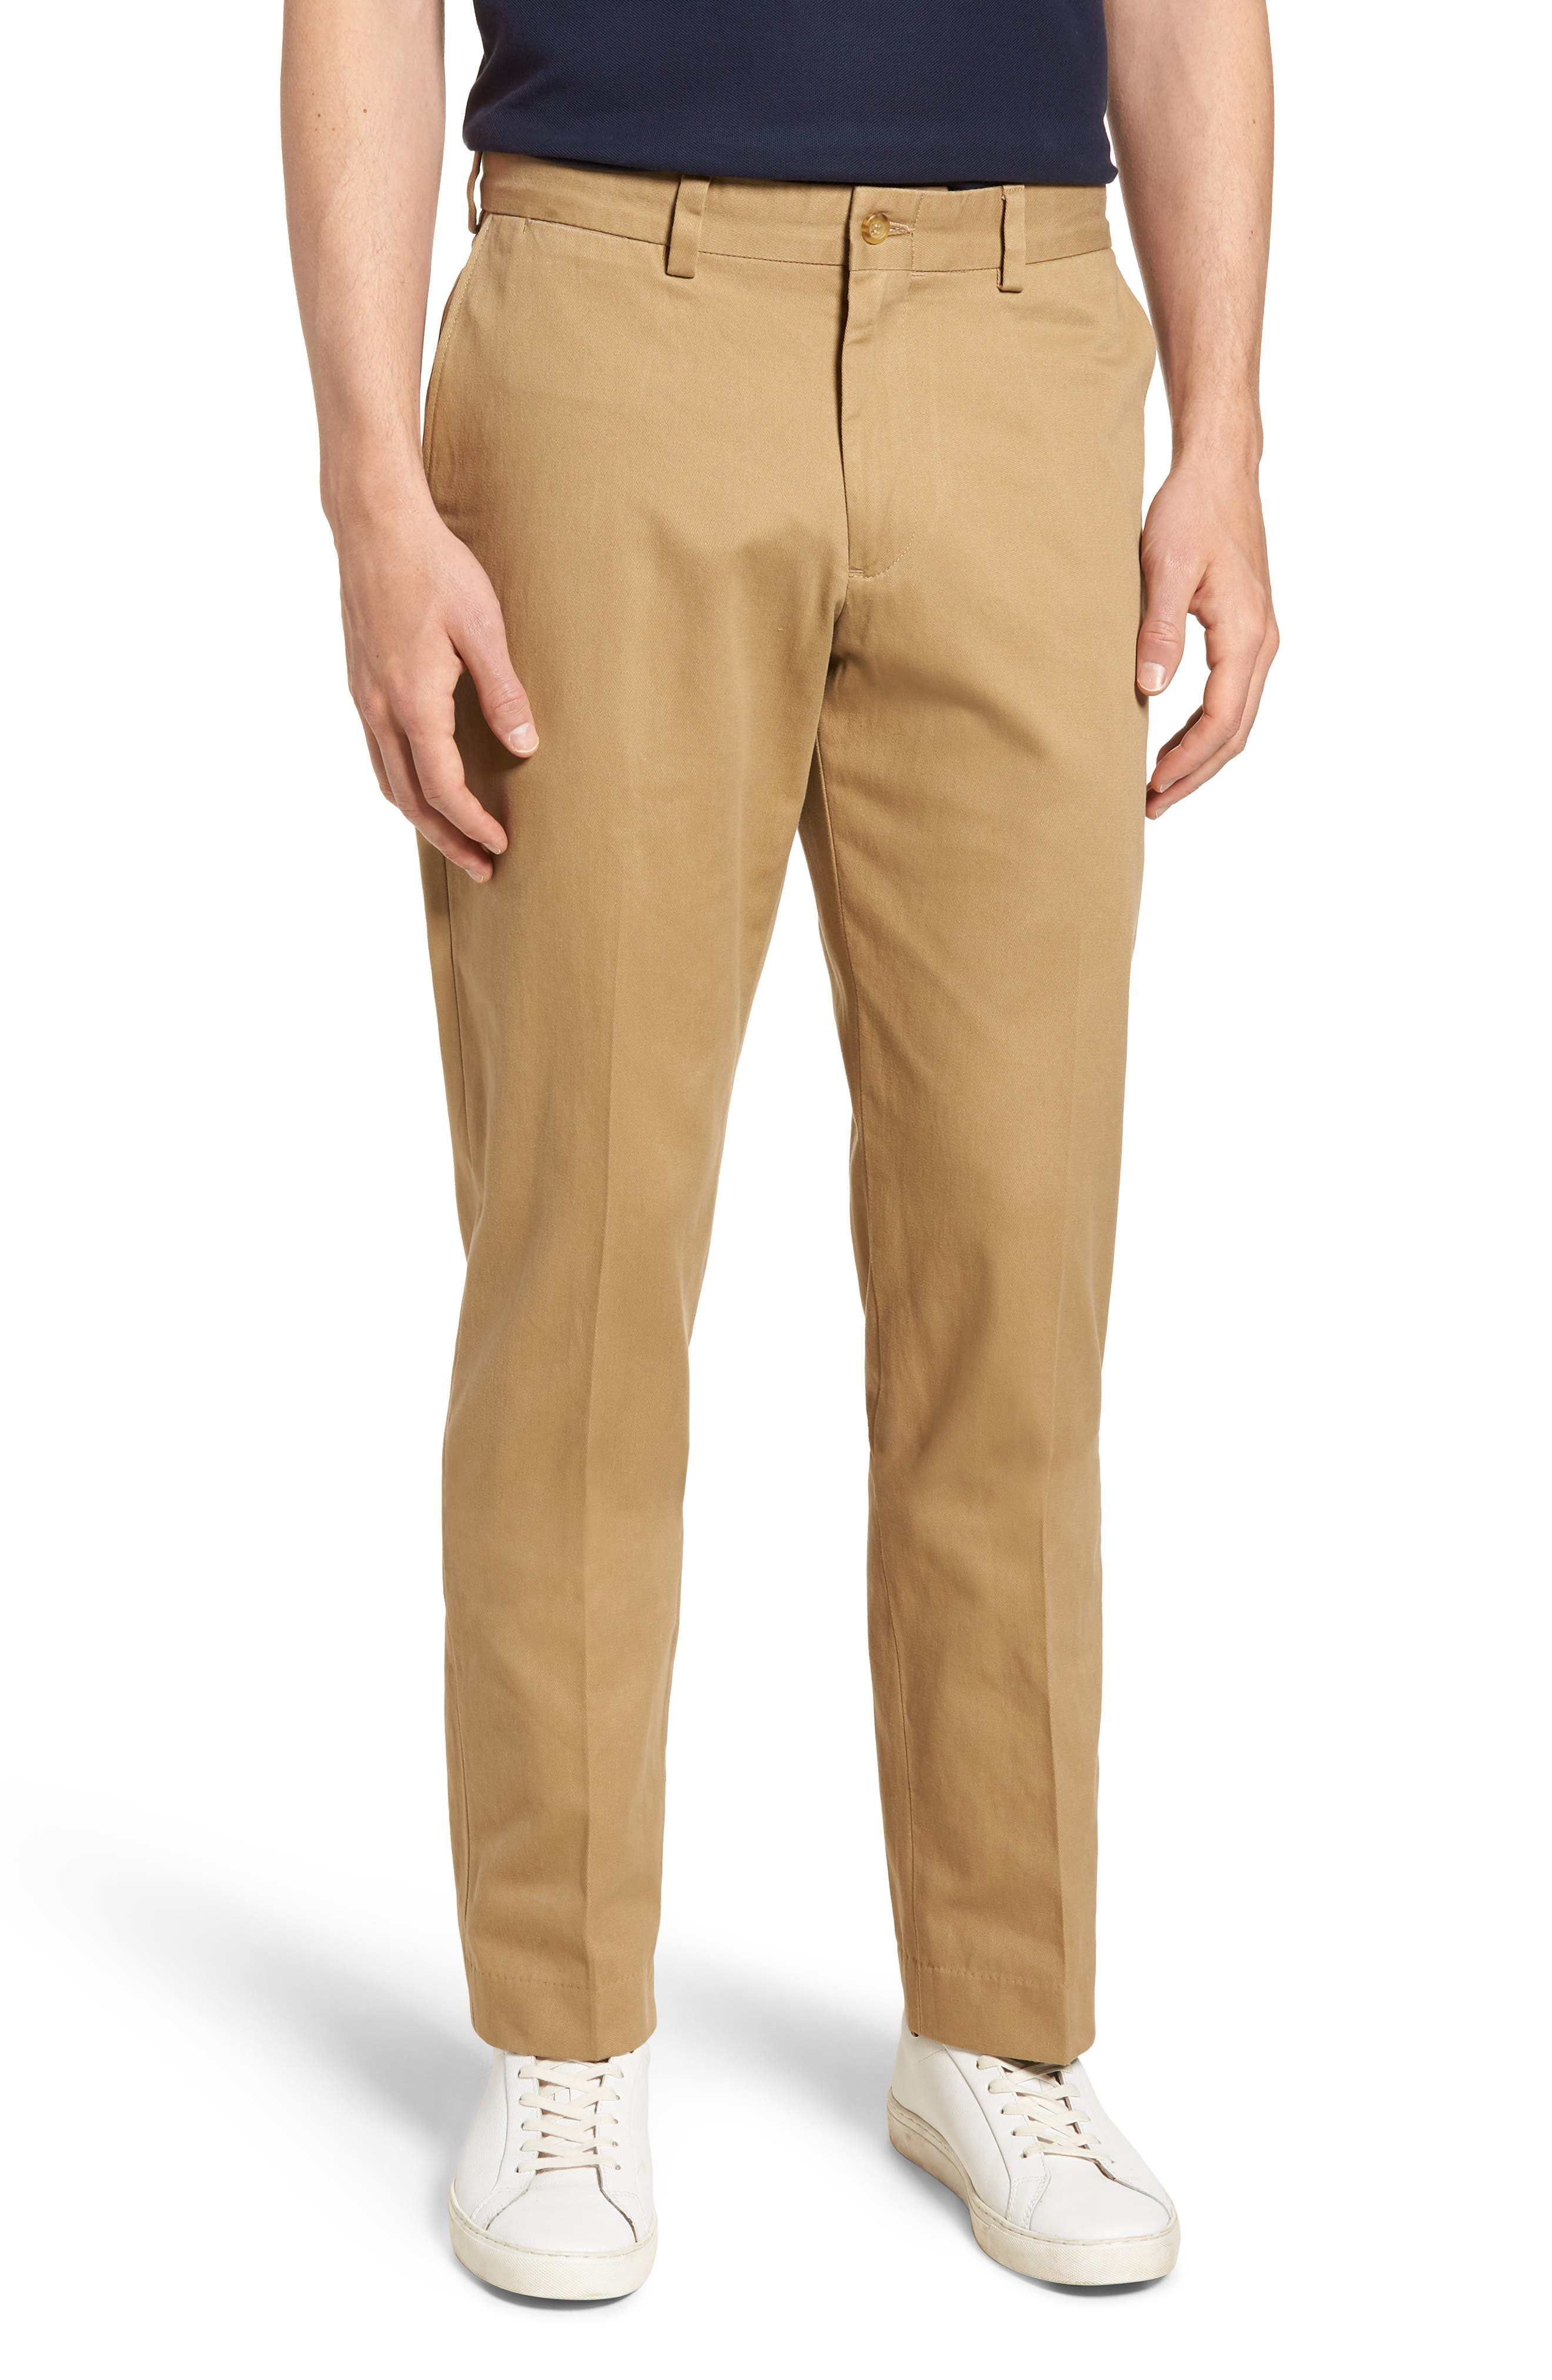 M3 Straight Fit Vintage Twill Flat Front Pants,                             Main thumbnail 1, color,                             210